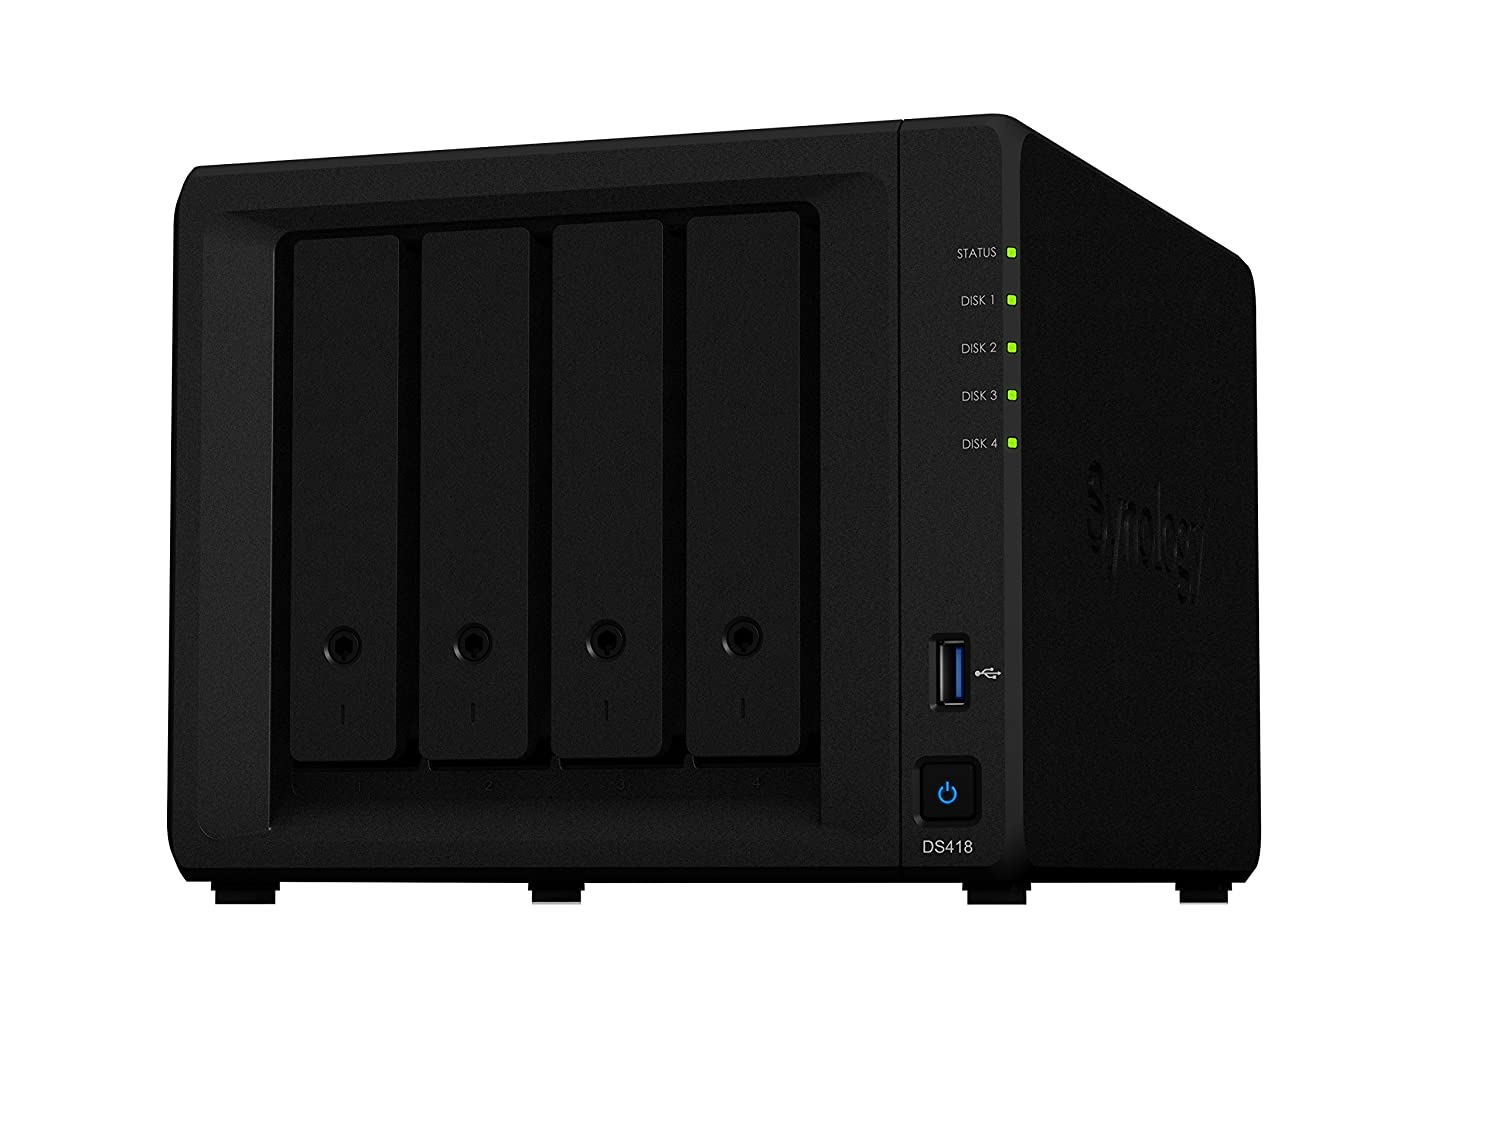 Synology DS418 12TB (4 x 3TB WD Red HDD) - Unidad Raid (12000 GB, 3000 GB, DiskStation Manager)